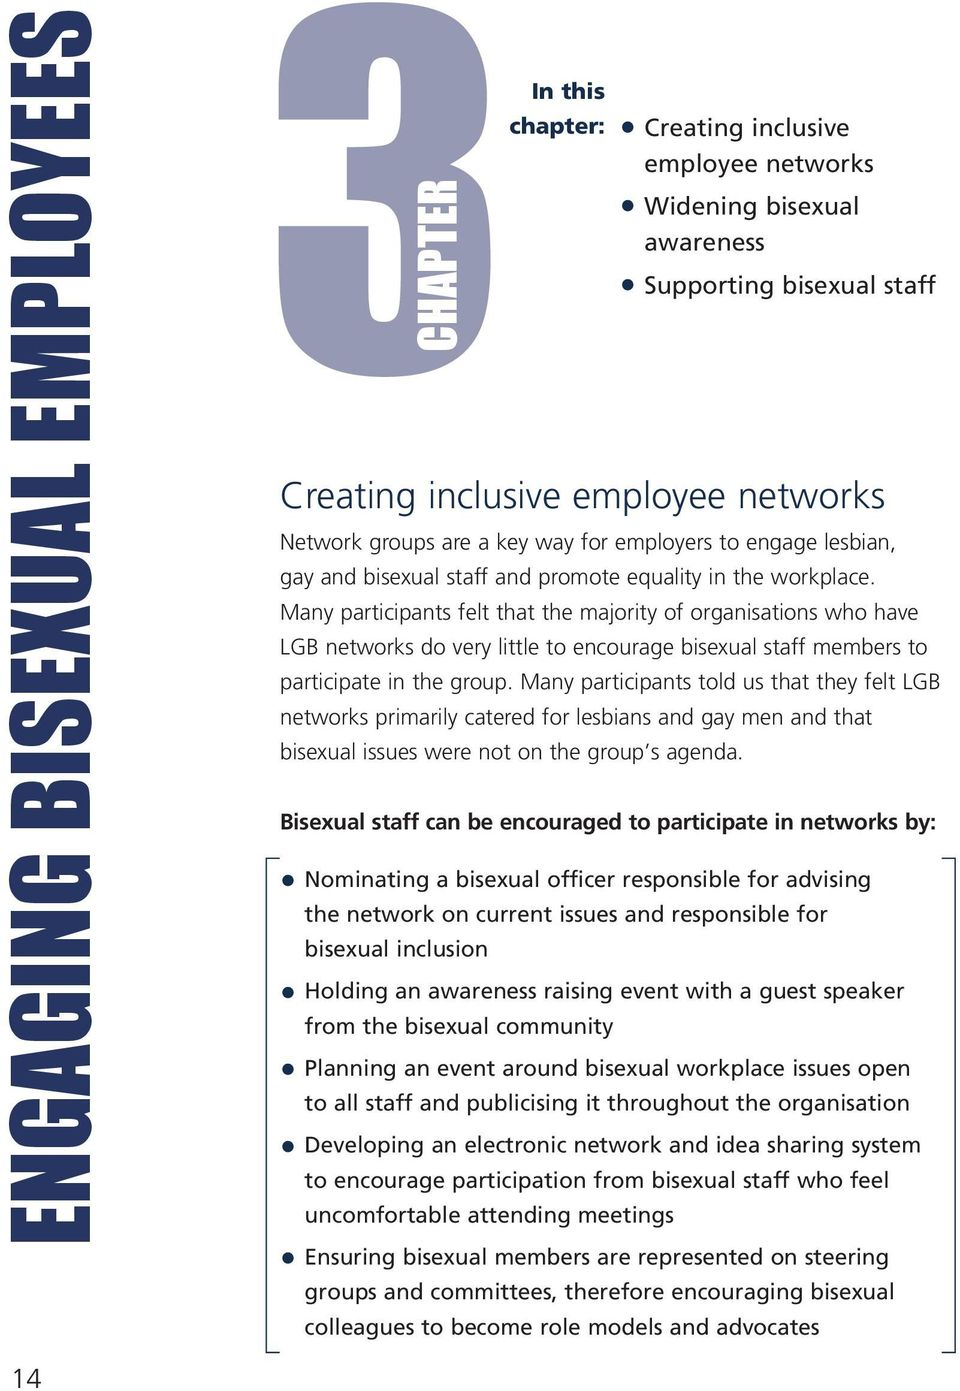 Many participants felt that the majority of organisations who have LGB networks do very little to encourage bisexual staff members to participate in the group.